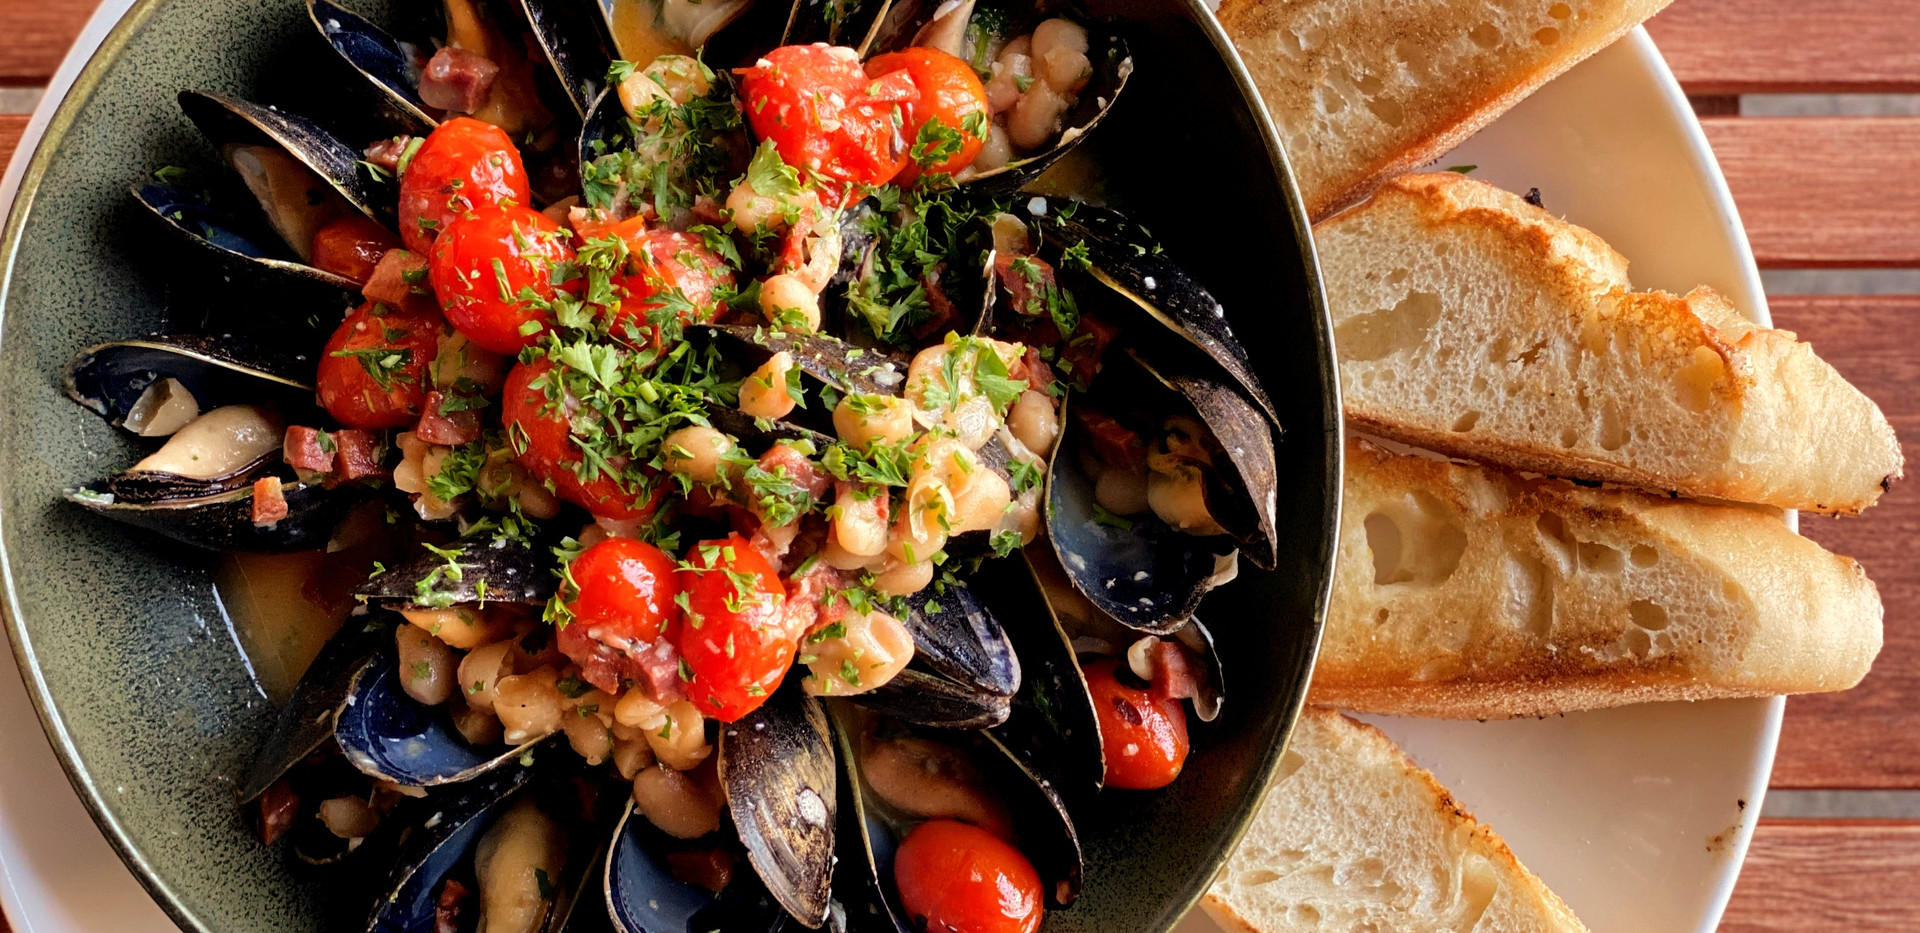 WF_Fall%2520Mussels%2520(Website%25202)_